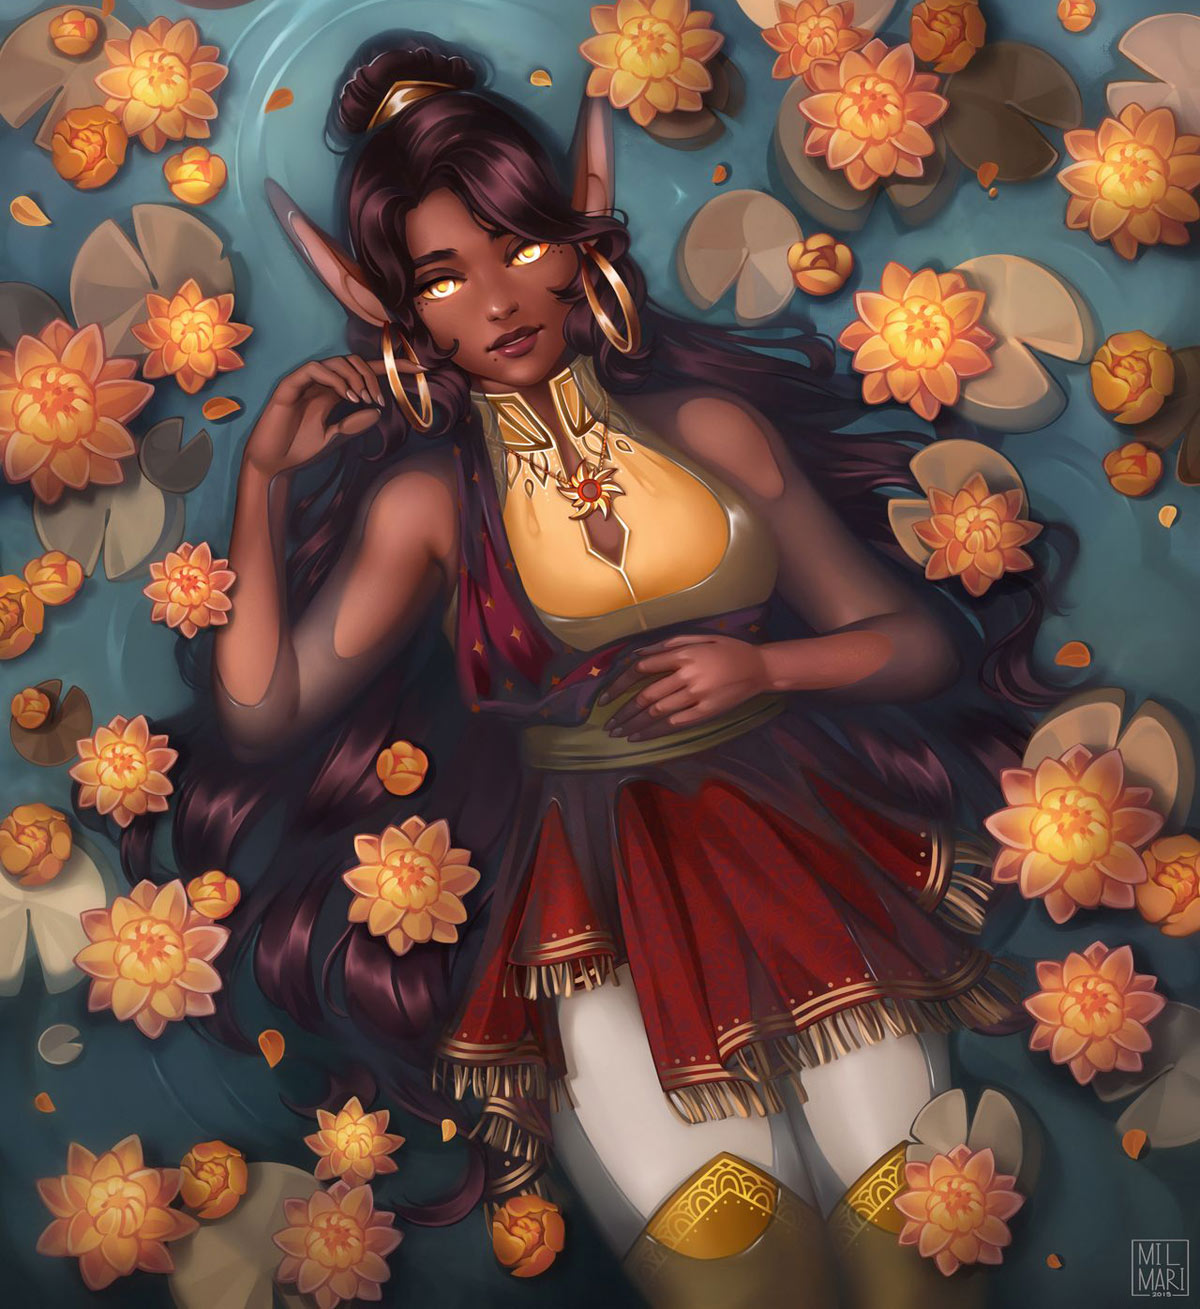 digital painting black girl princess lotus by milmari